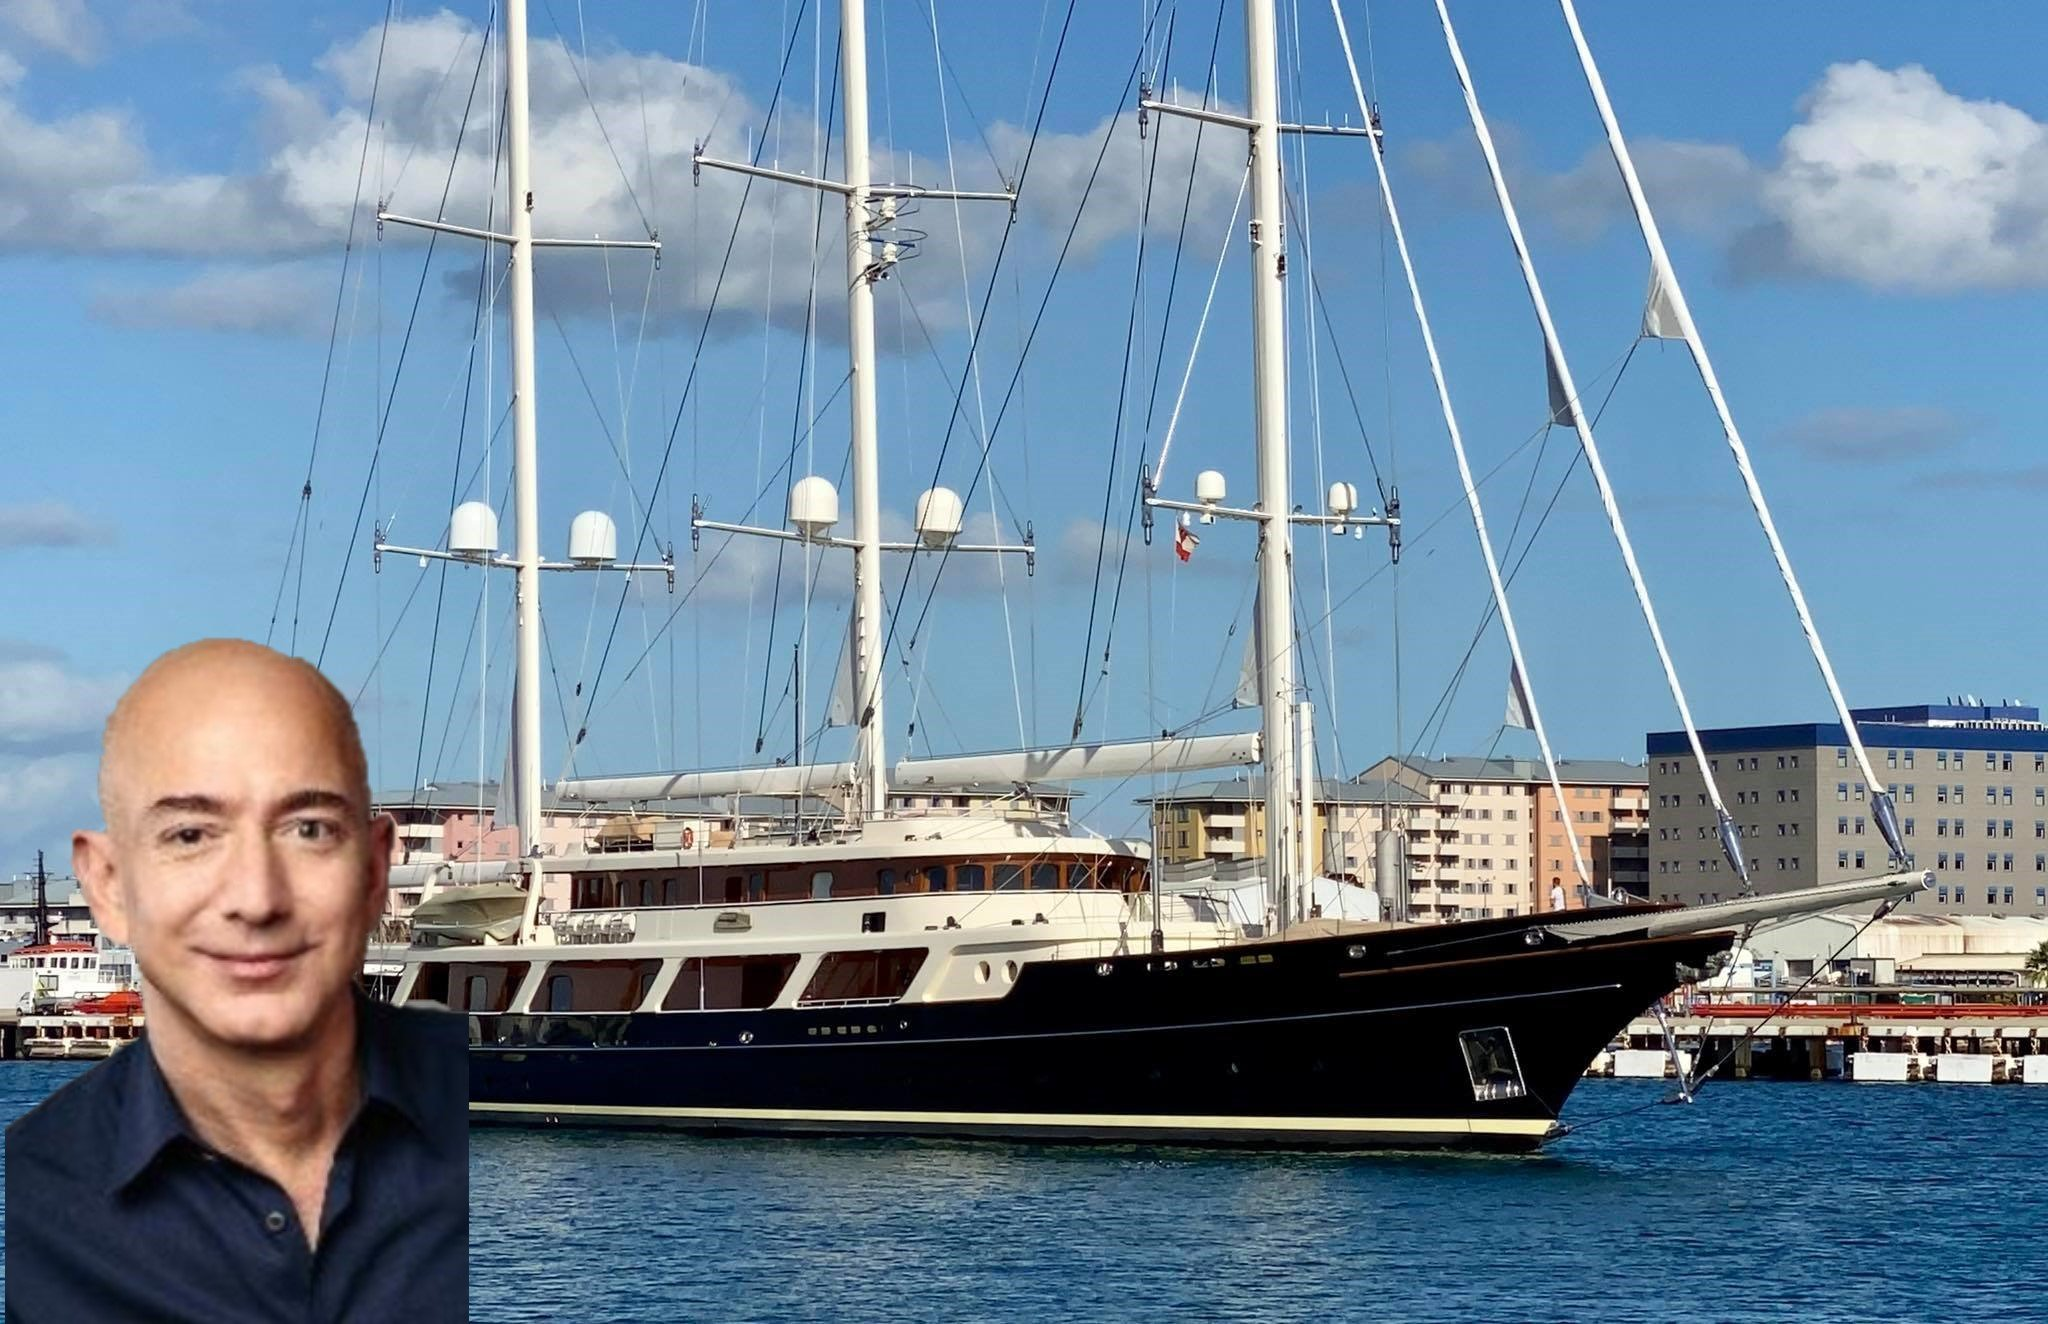 Jeff Bezos - richest yacht owner - sailing yacht Y721